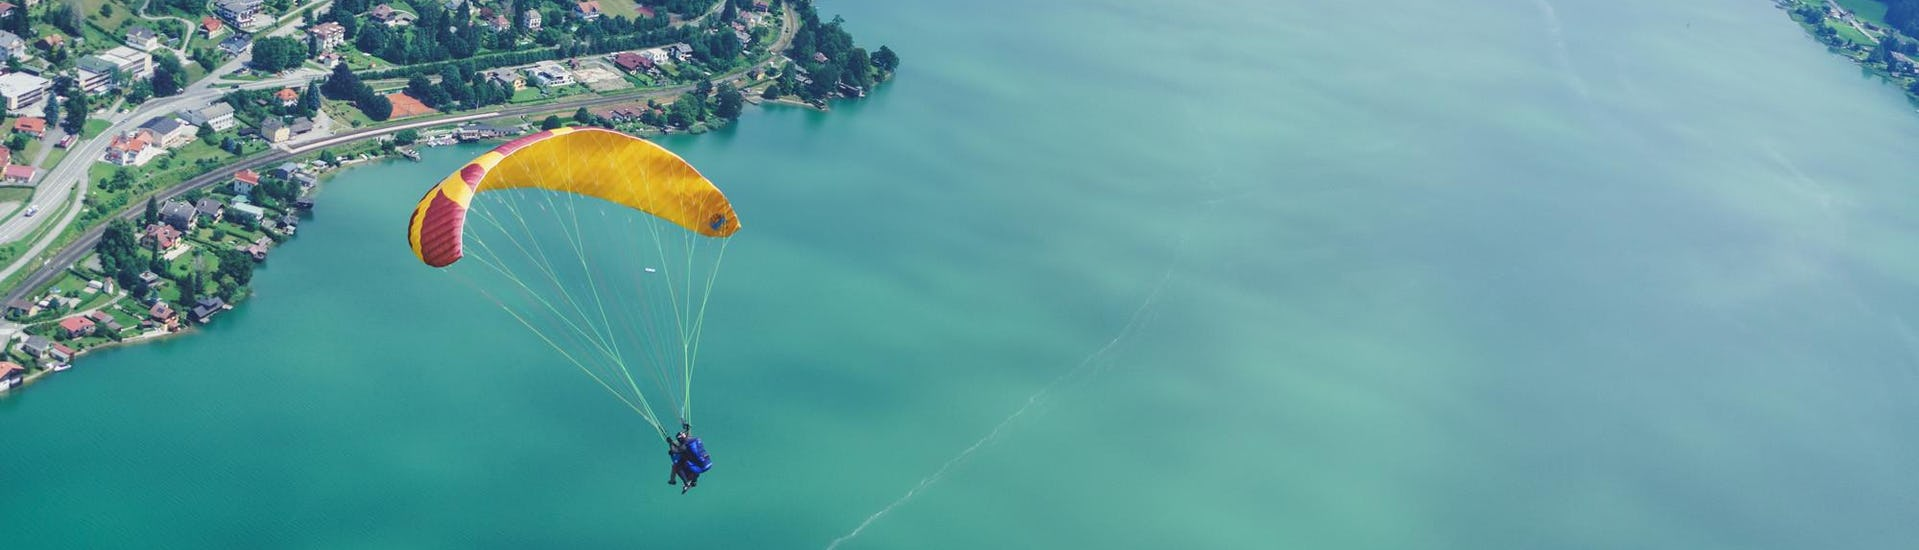 Tandem Paragliding in Carinthia - Steer On Your Own